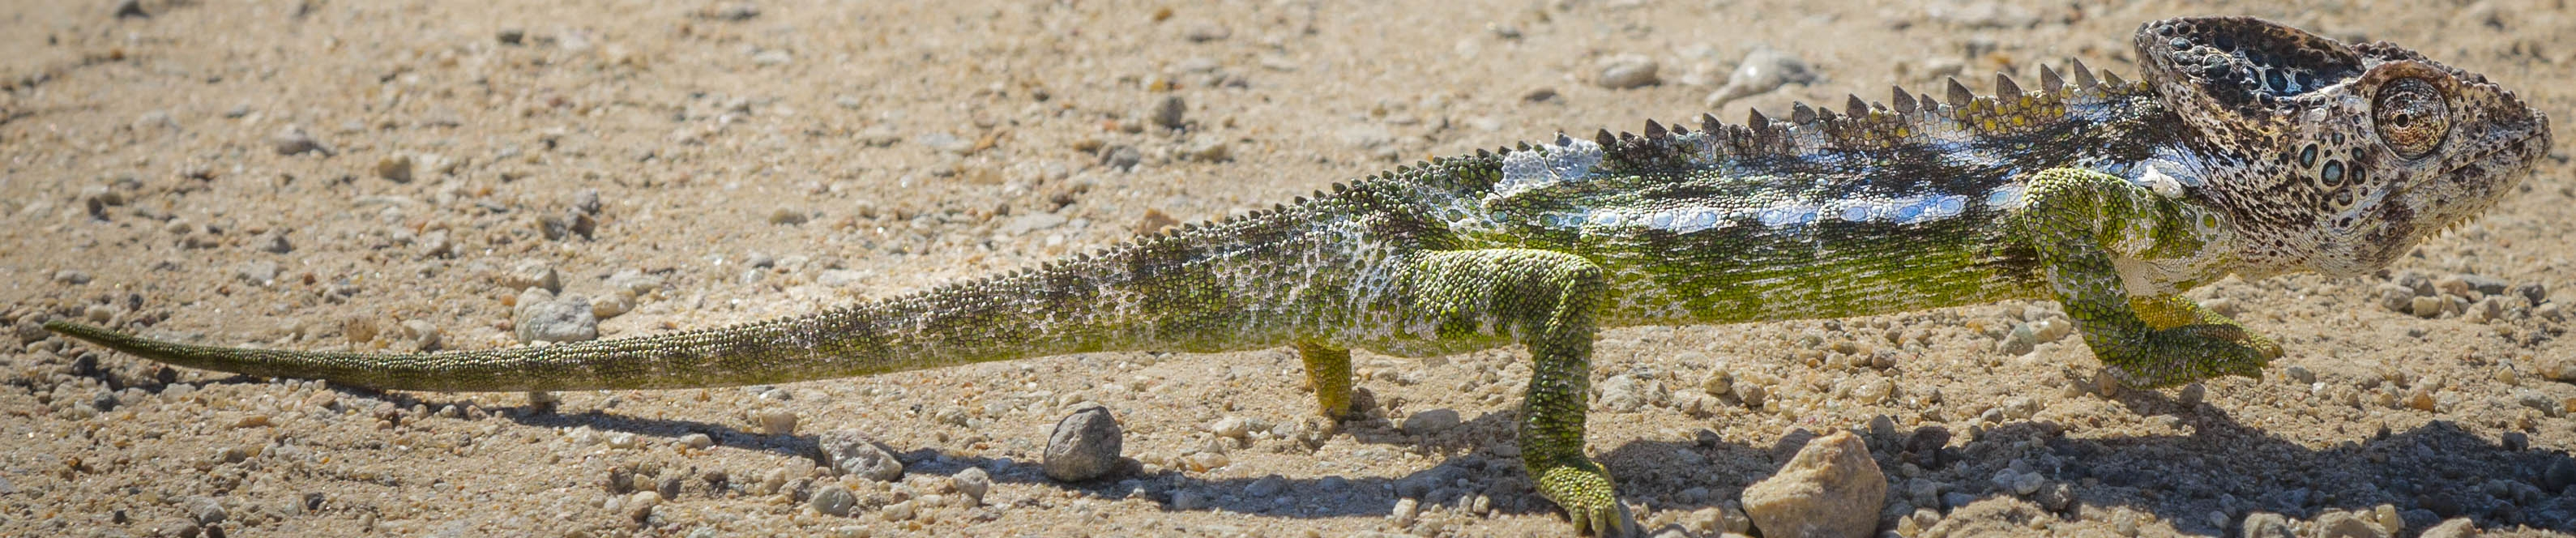 Warty chameleon in Madagascar | Mandrare River Camp